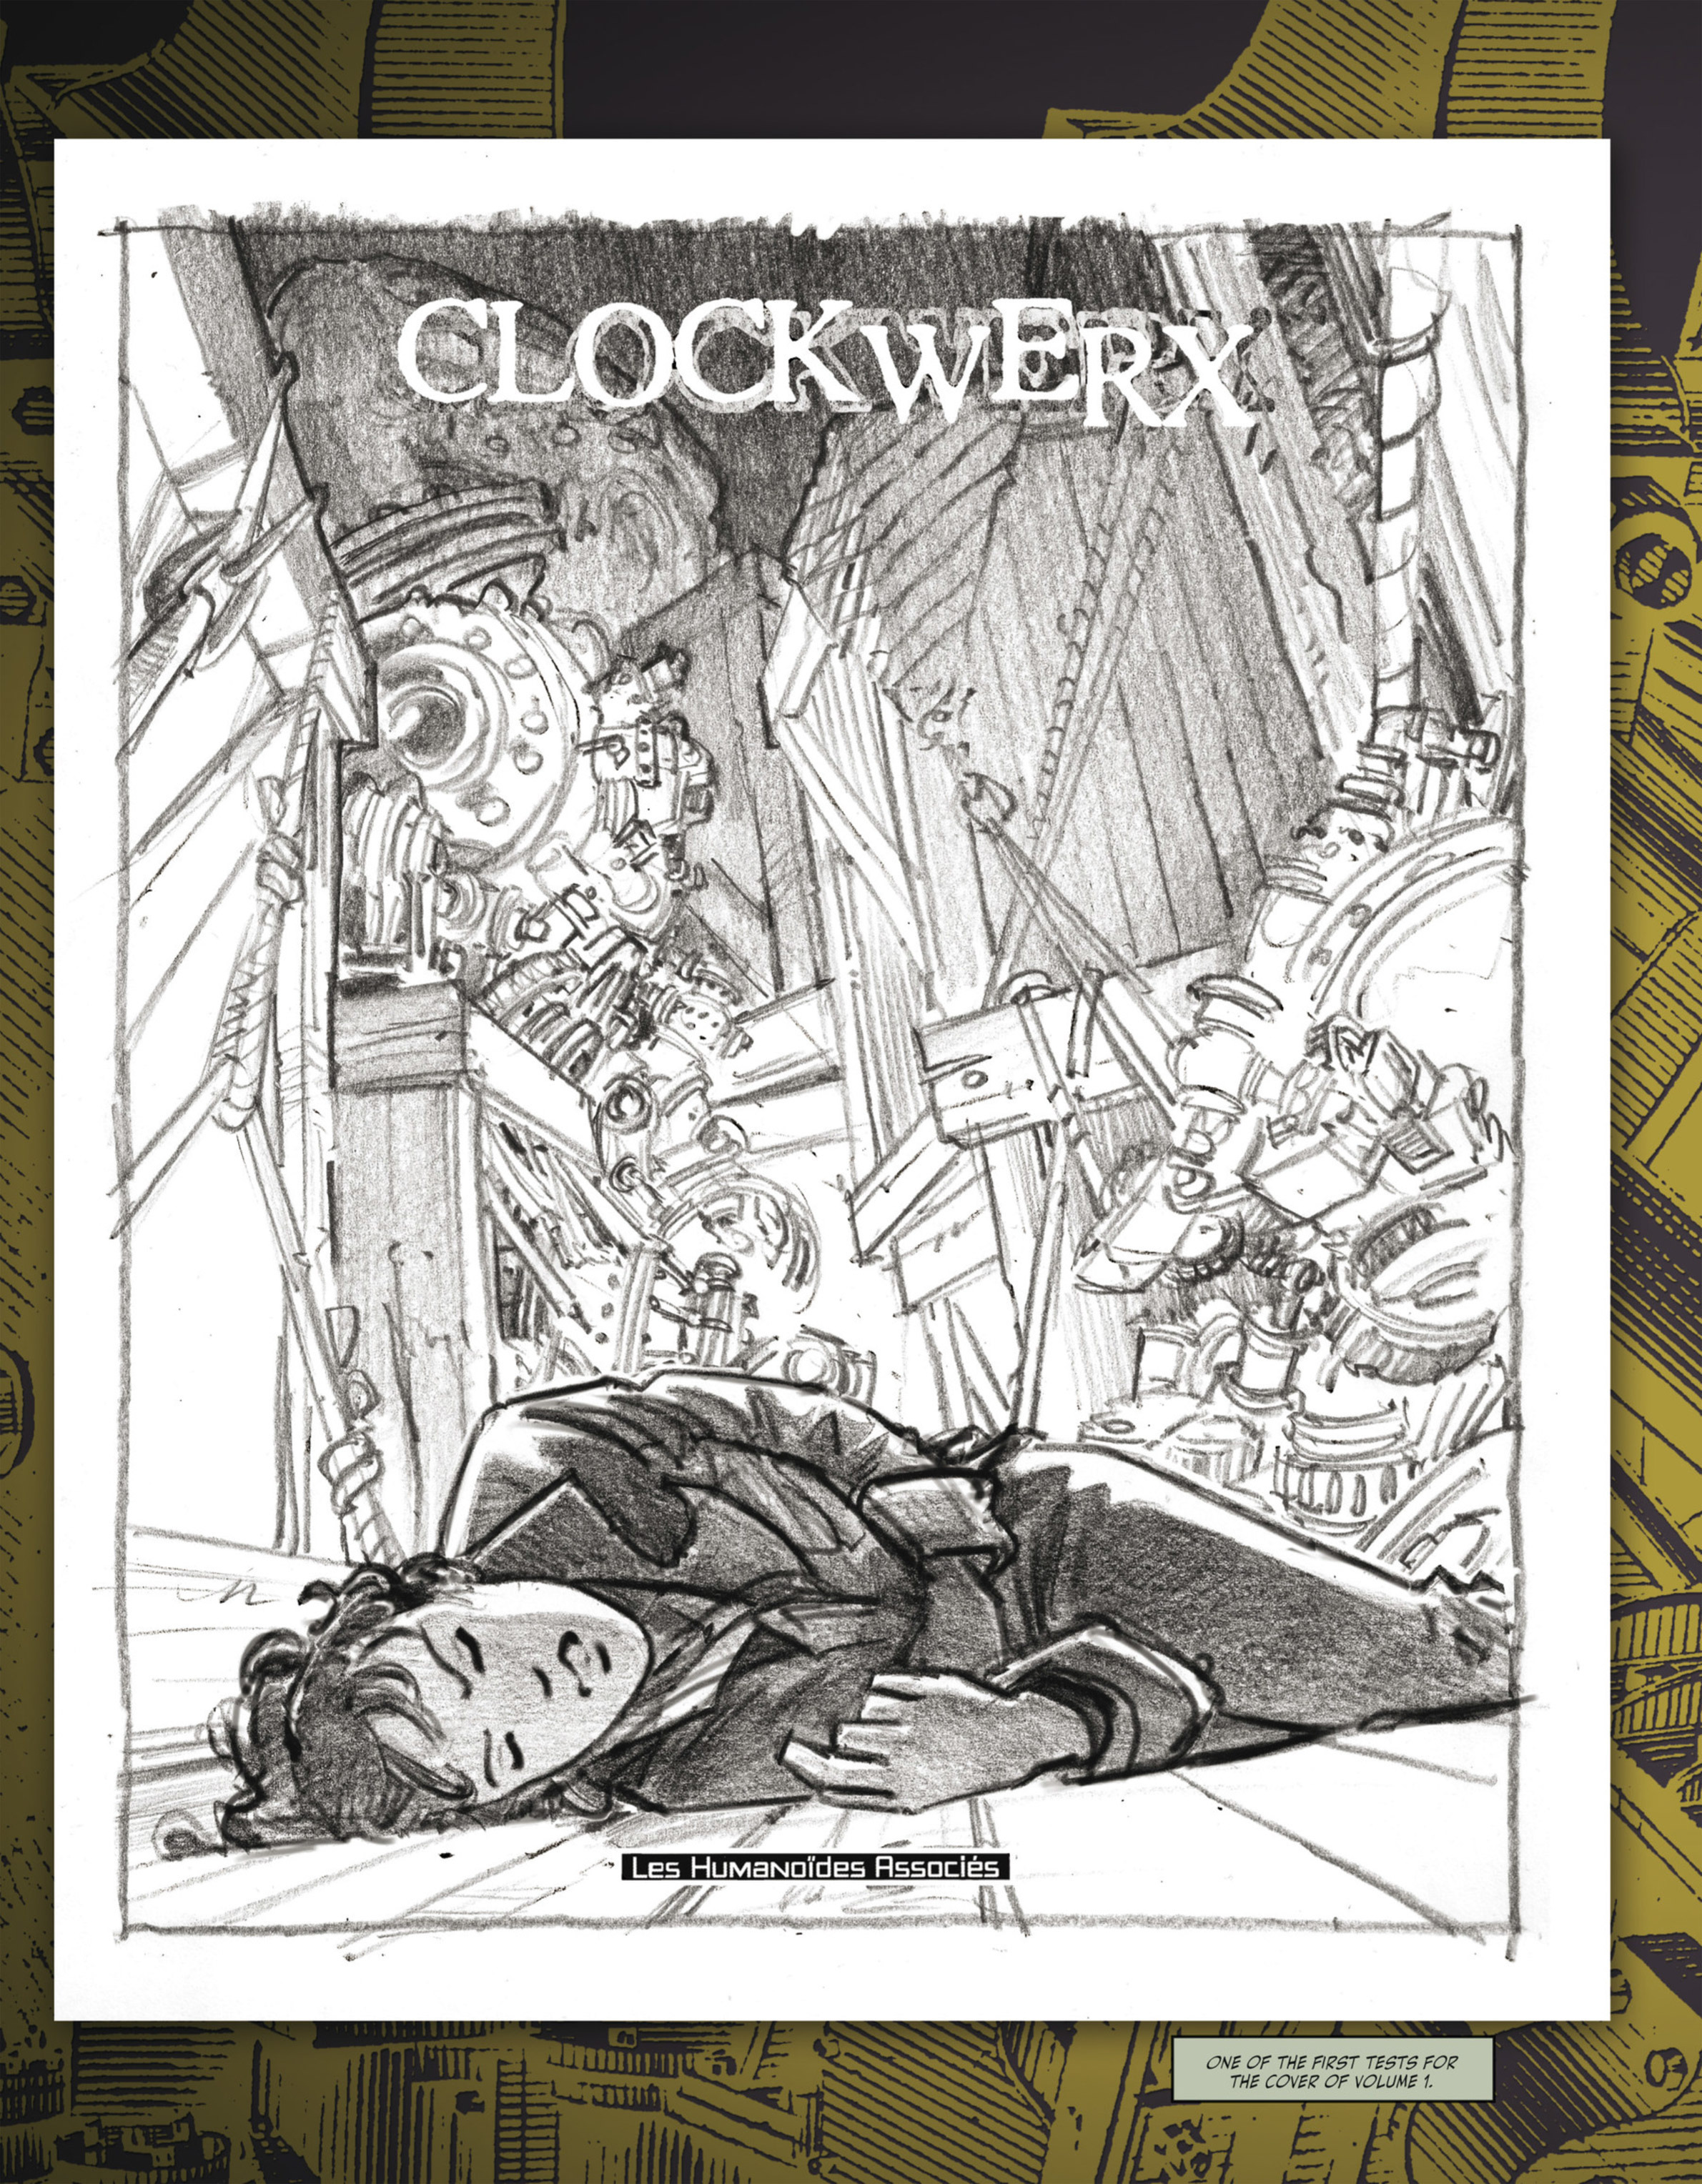 Read online Clockwerx comic -  Issue #2 - 57